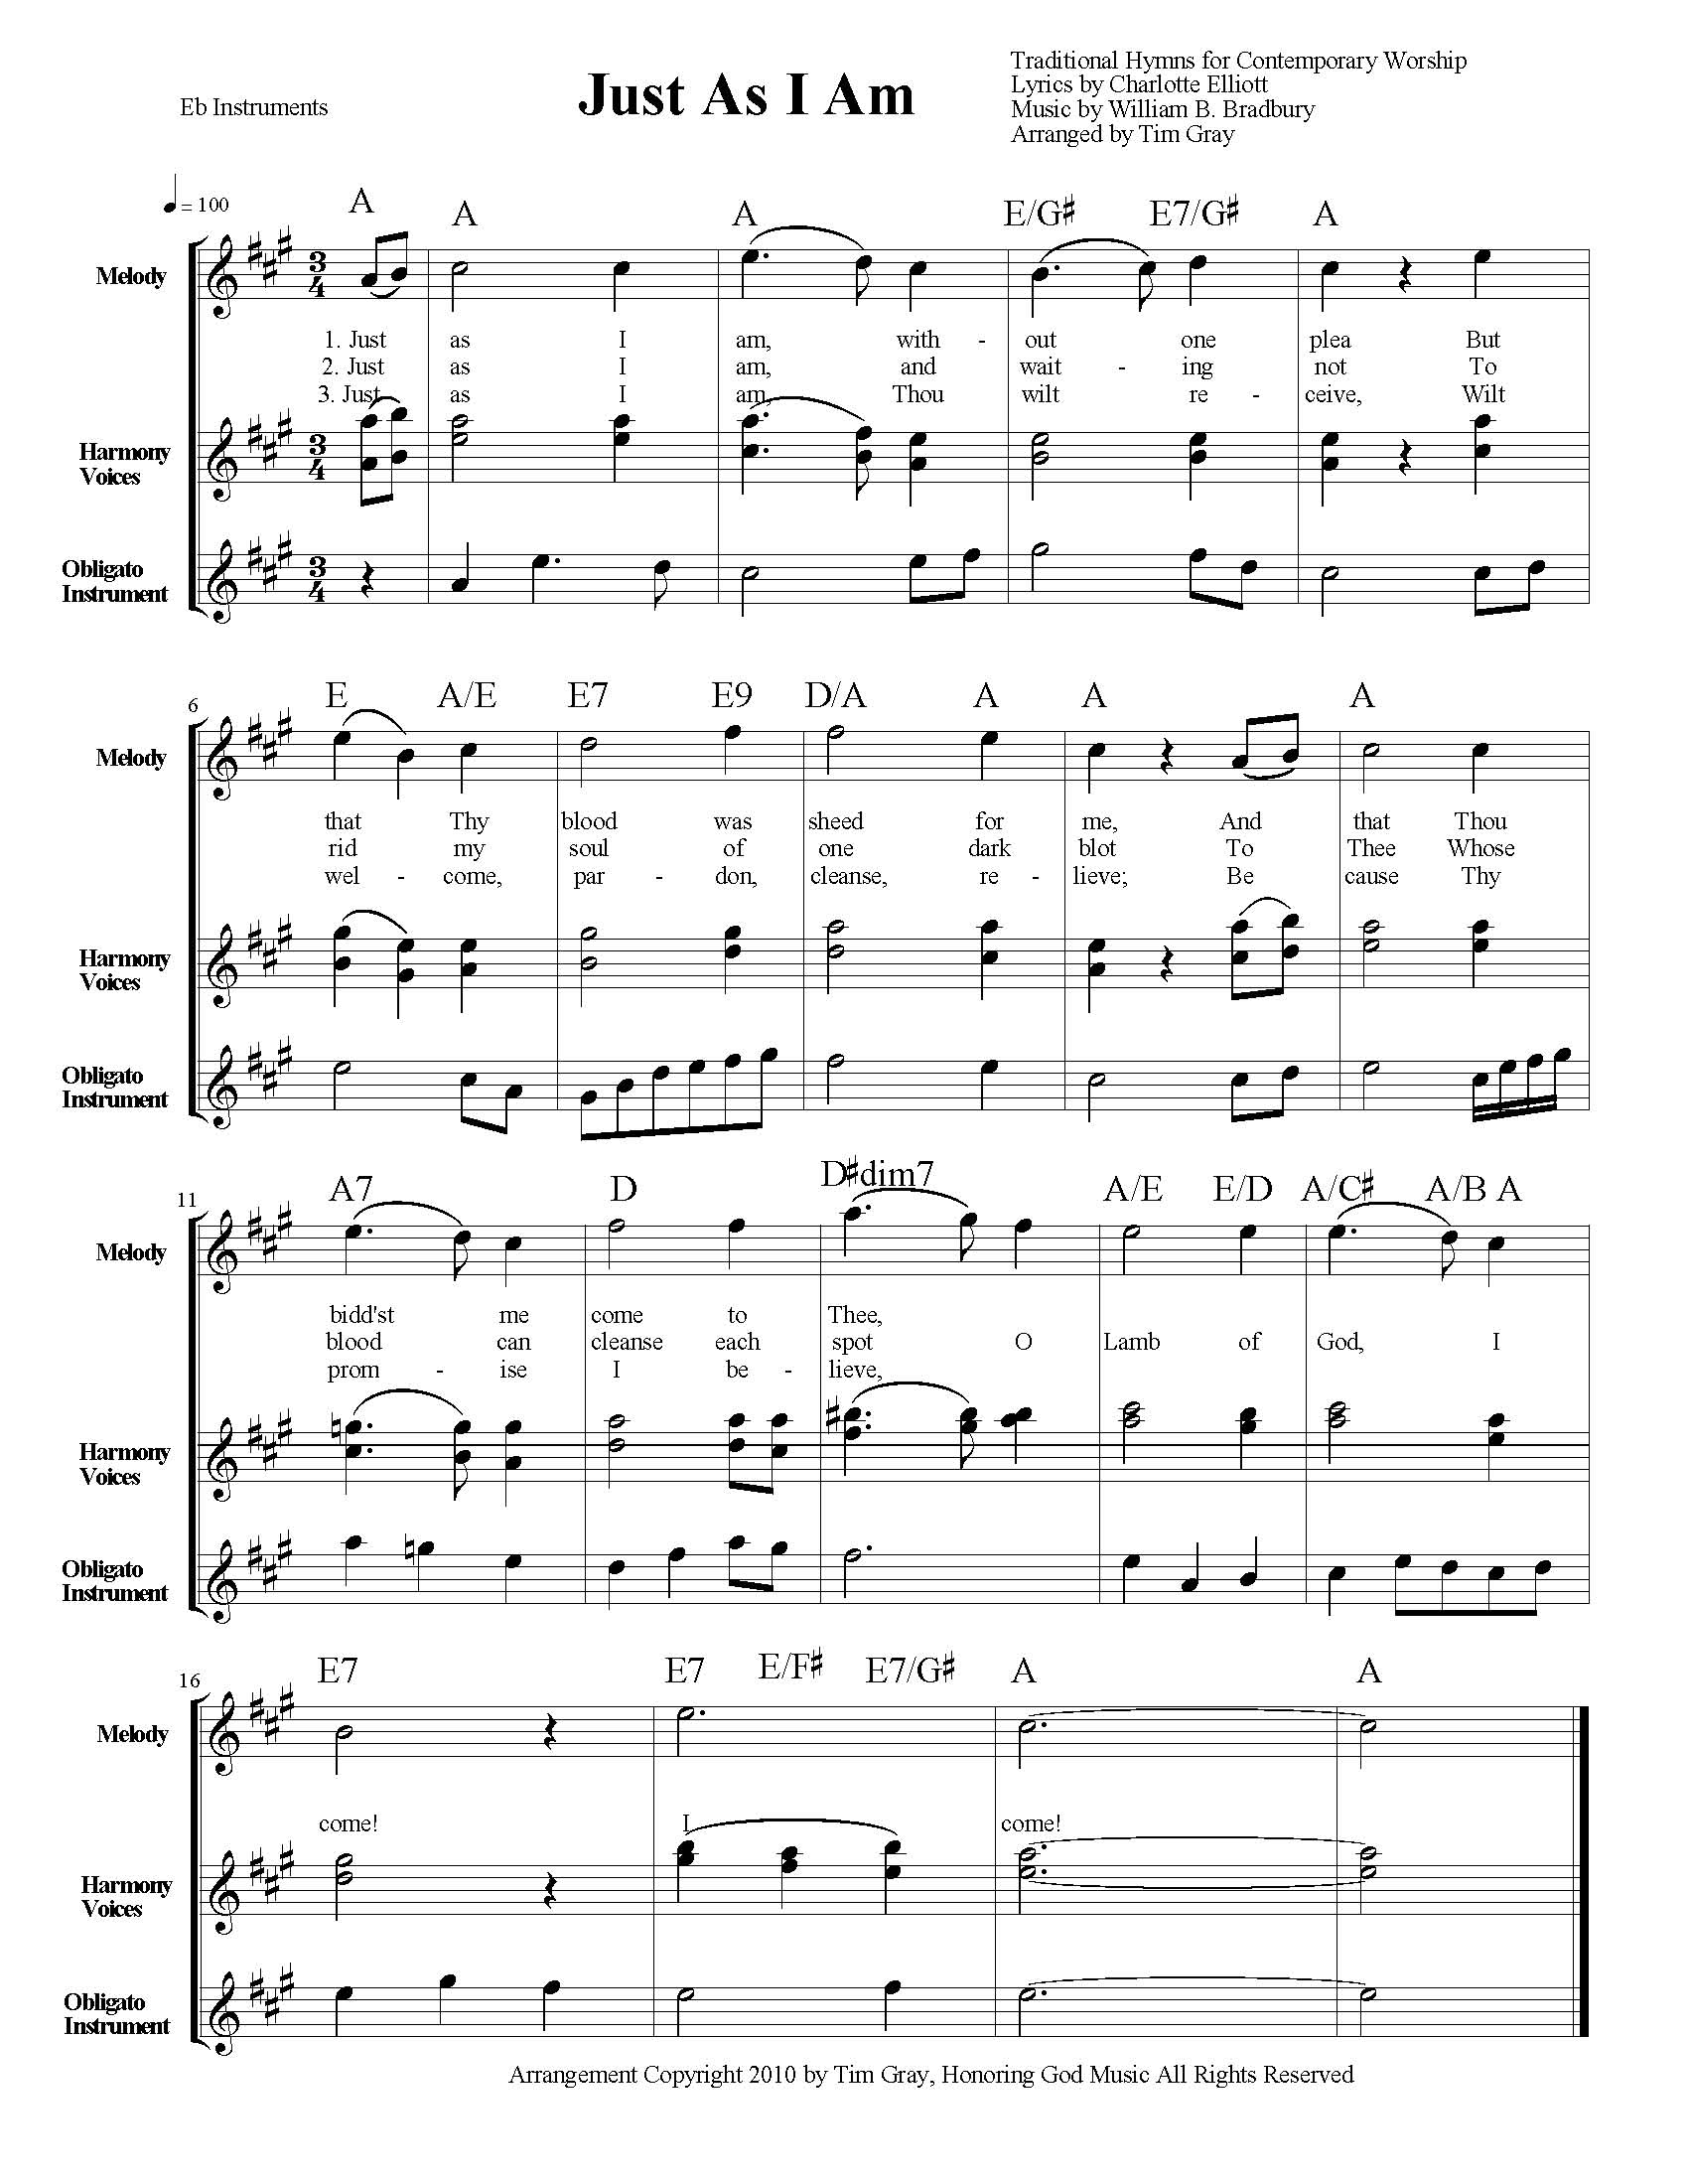 Just As I Am TH4CW Traditional Hymns for Contemporary Worship sample page on HonoringGodMusic.com